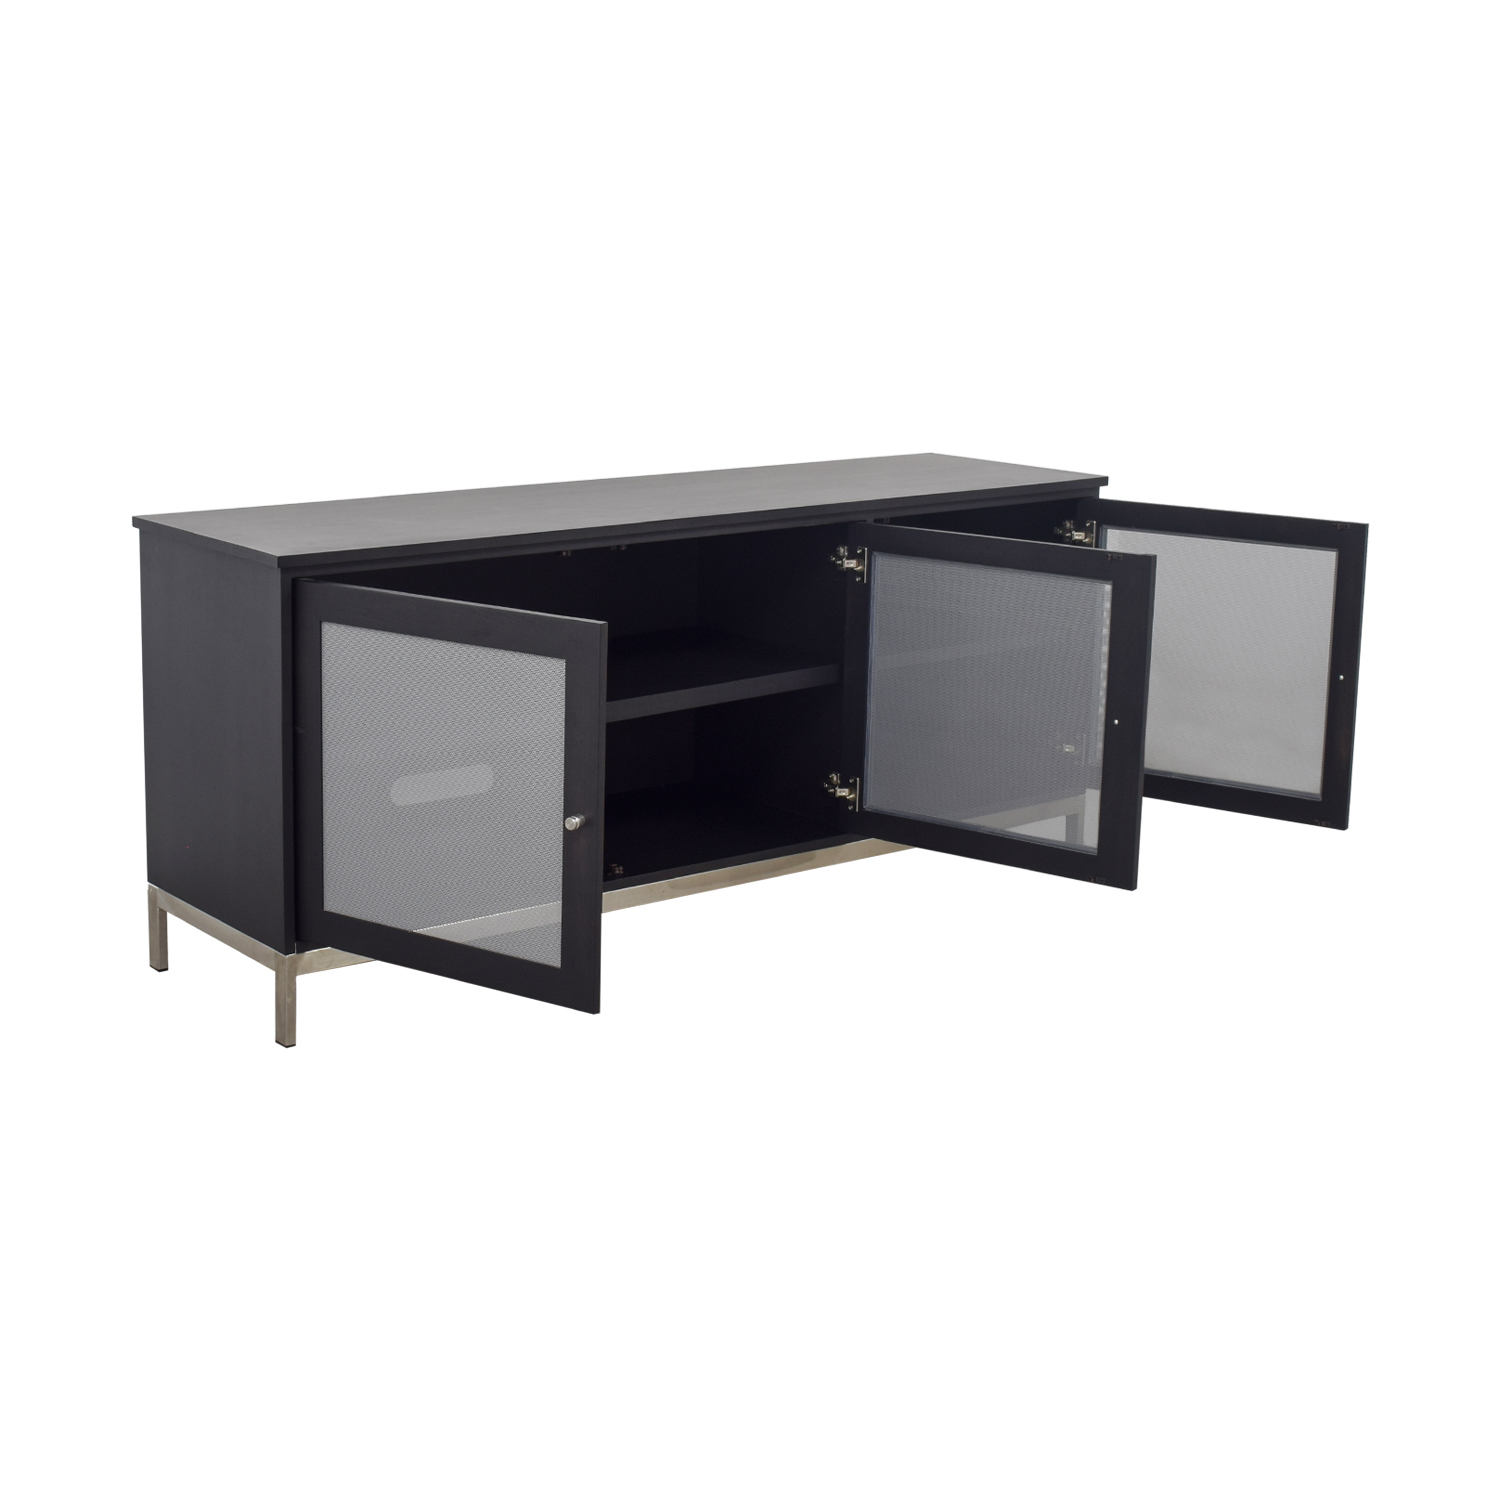 Room & Board Room & Board Linear Black and Grey Media Cabinet for sale